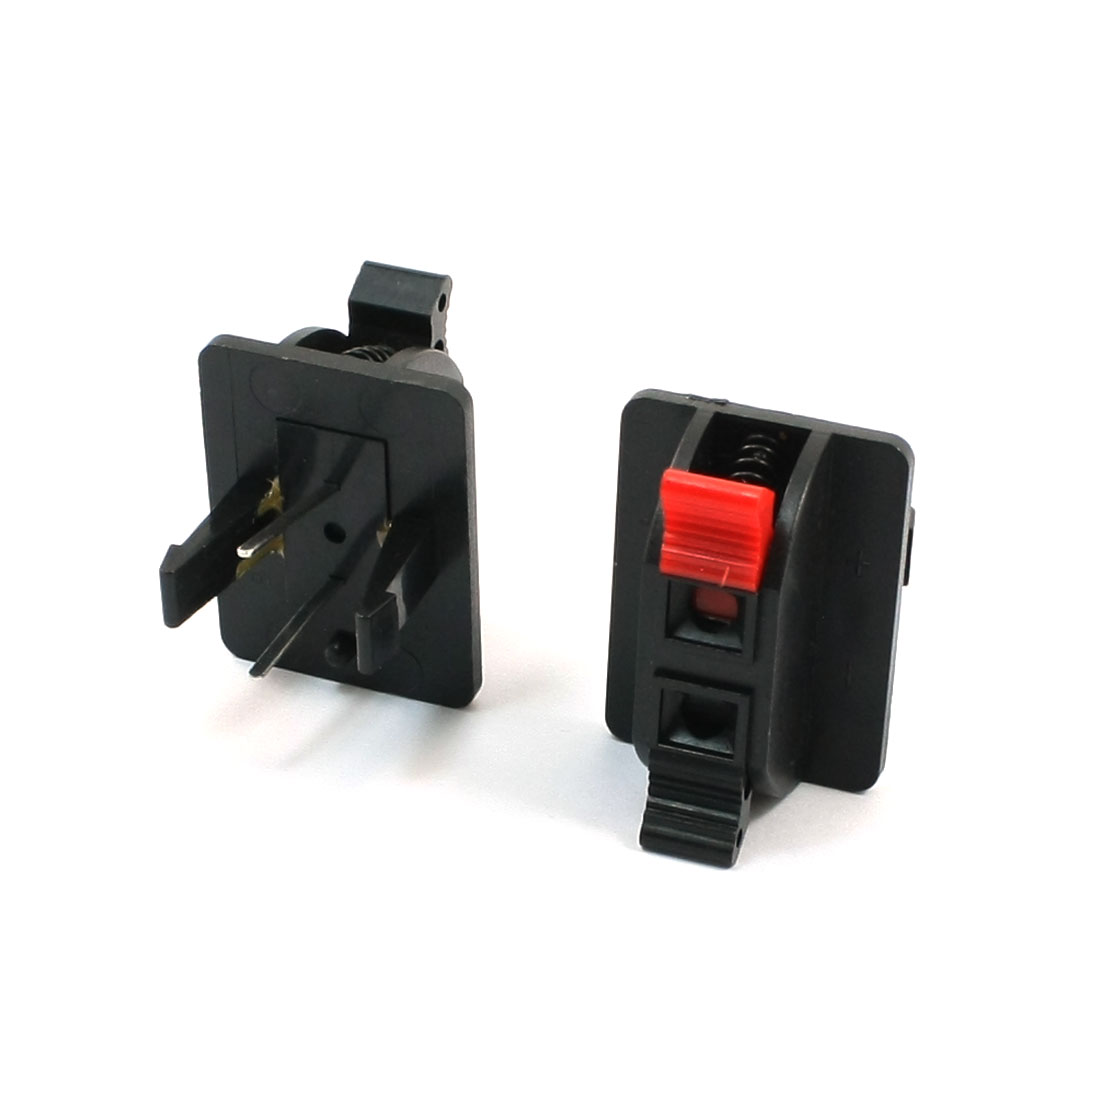 2pcs Red Black Push Type 2 Positon Speaker Terminal Connector 2 Terminal 40 x 30mm